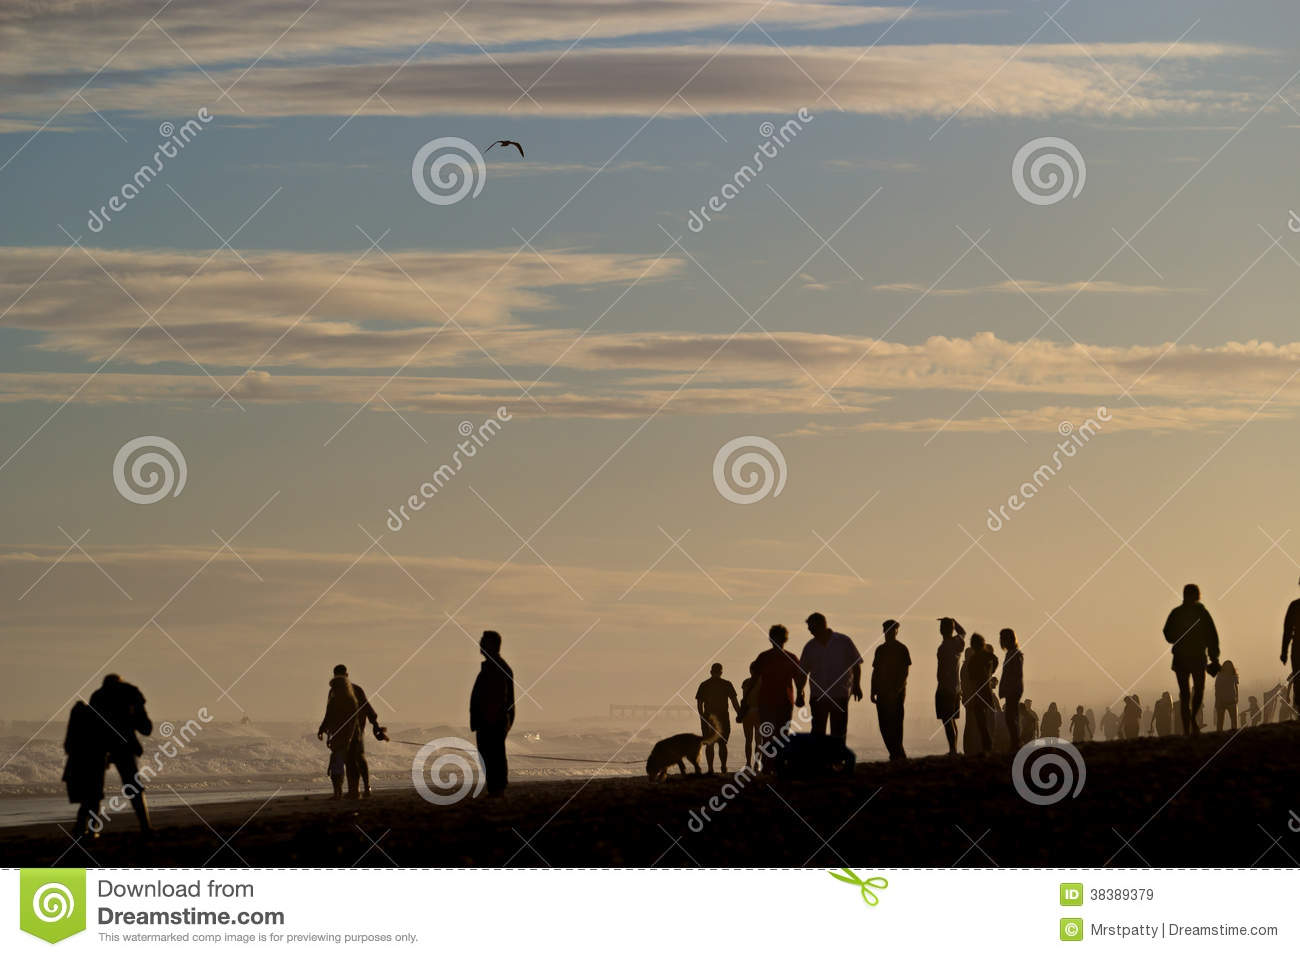 Silhouettes of people on a beach